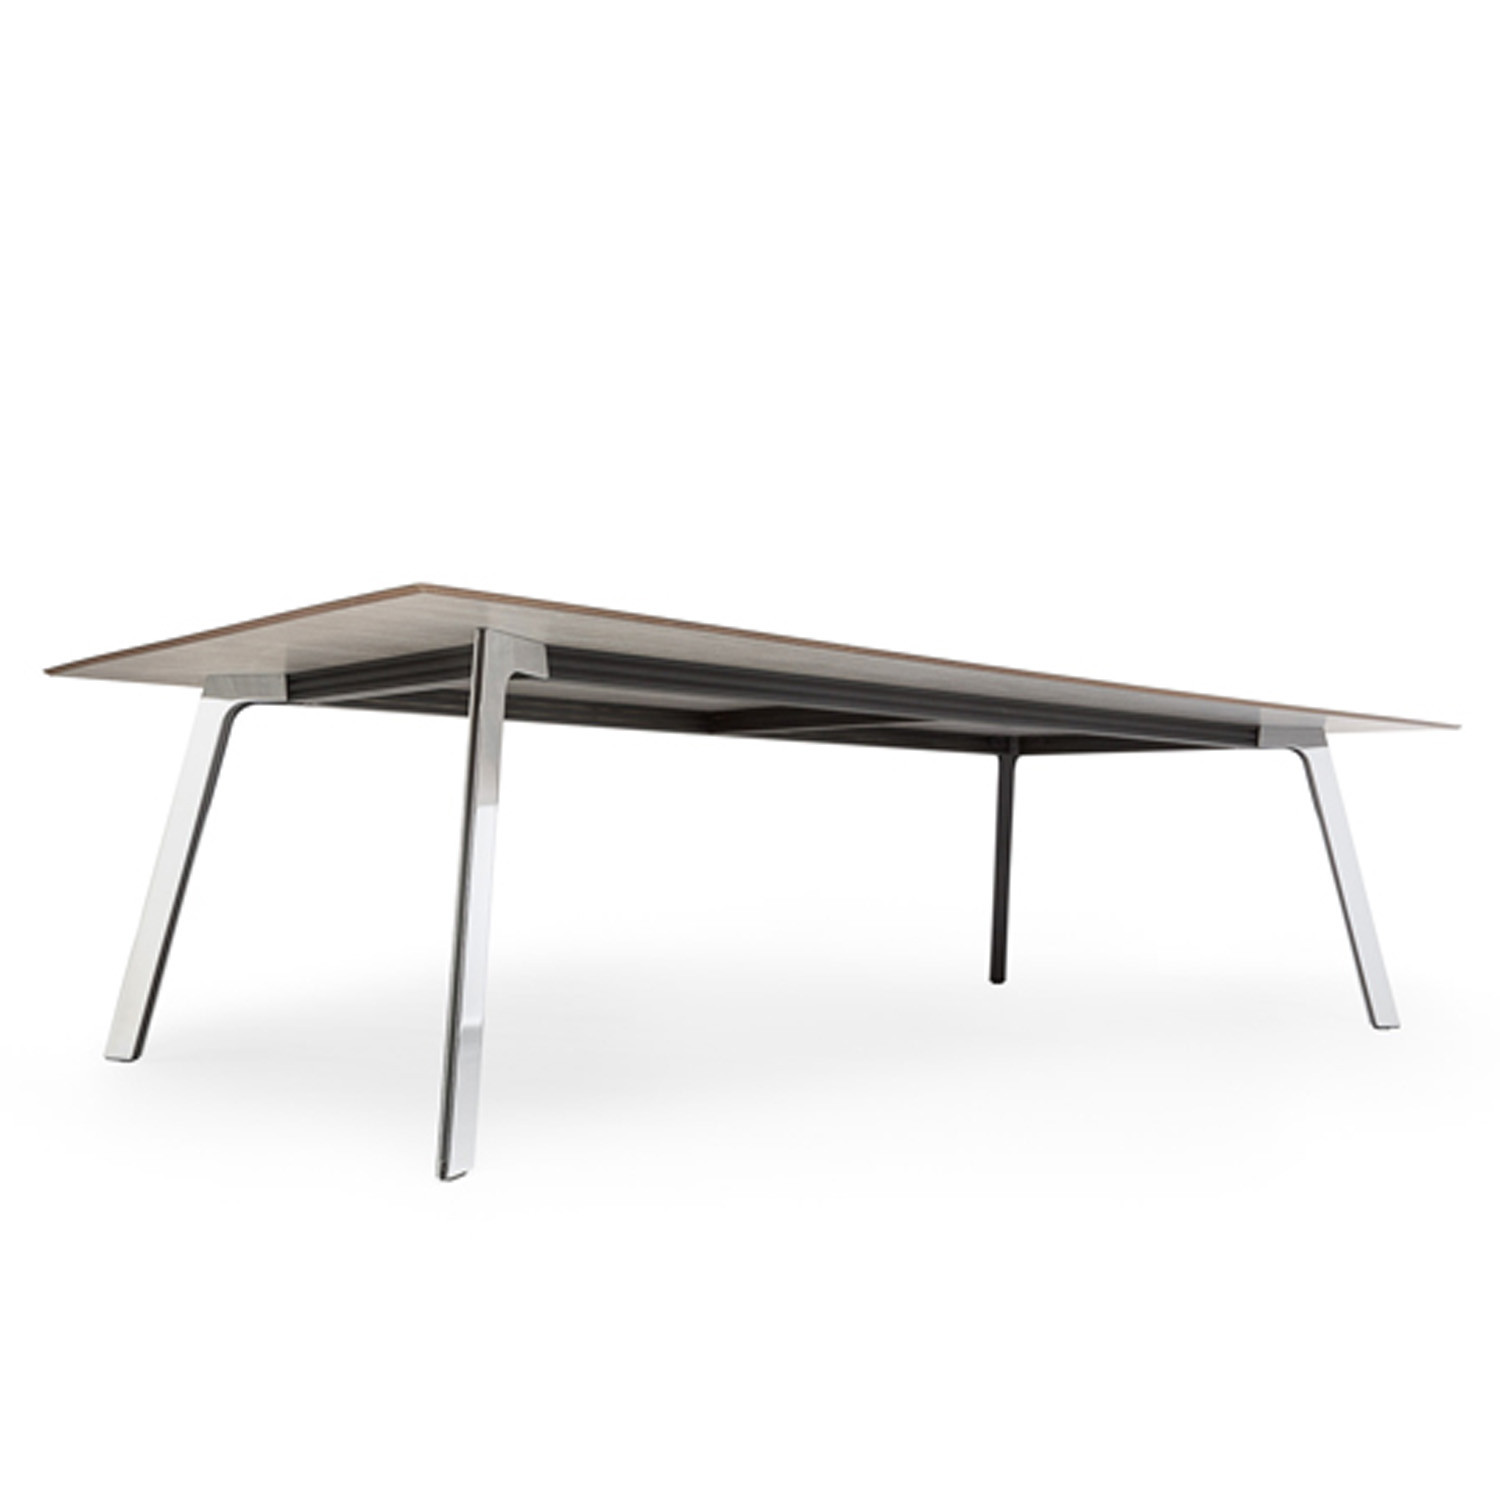 Groove Office Table Underside View